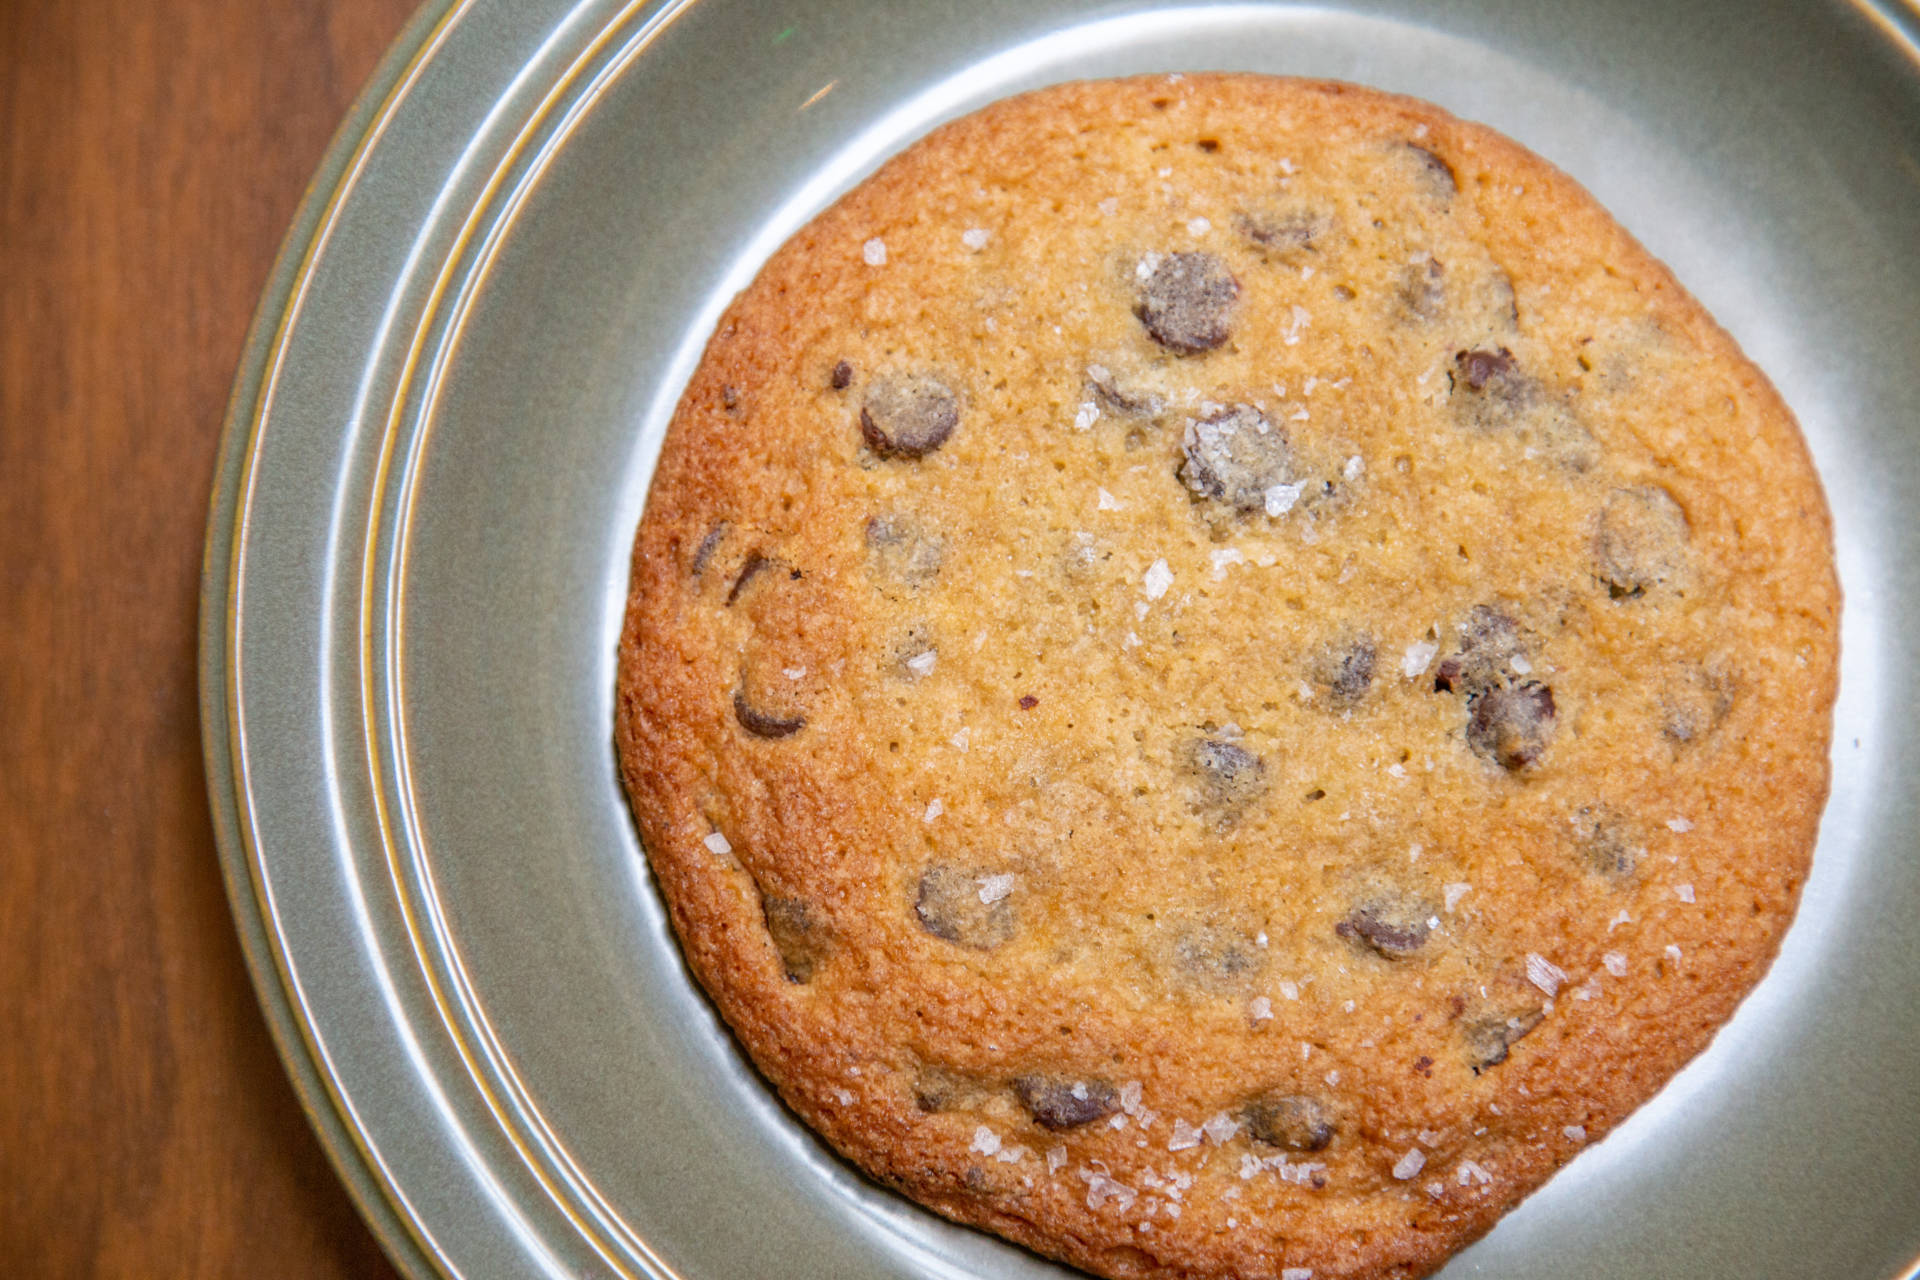 Provender's chocolate chip cookie.